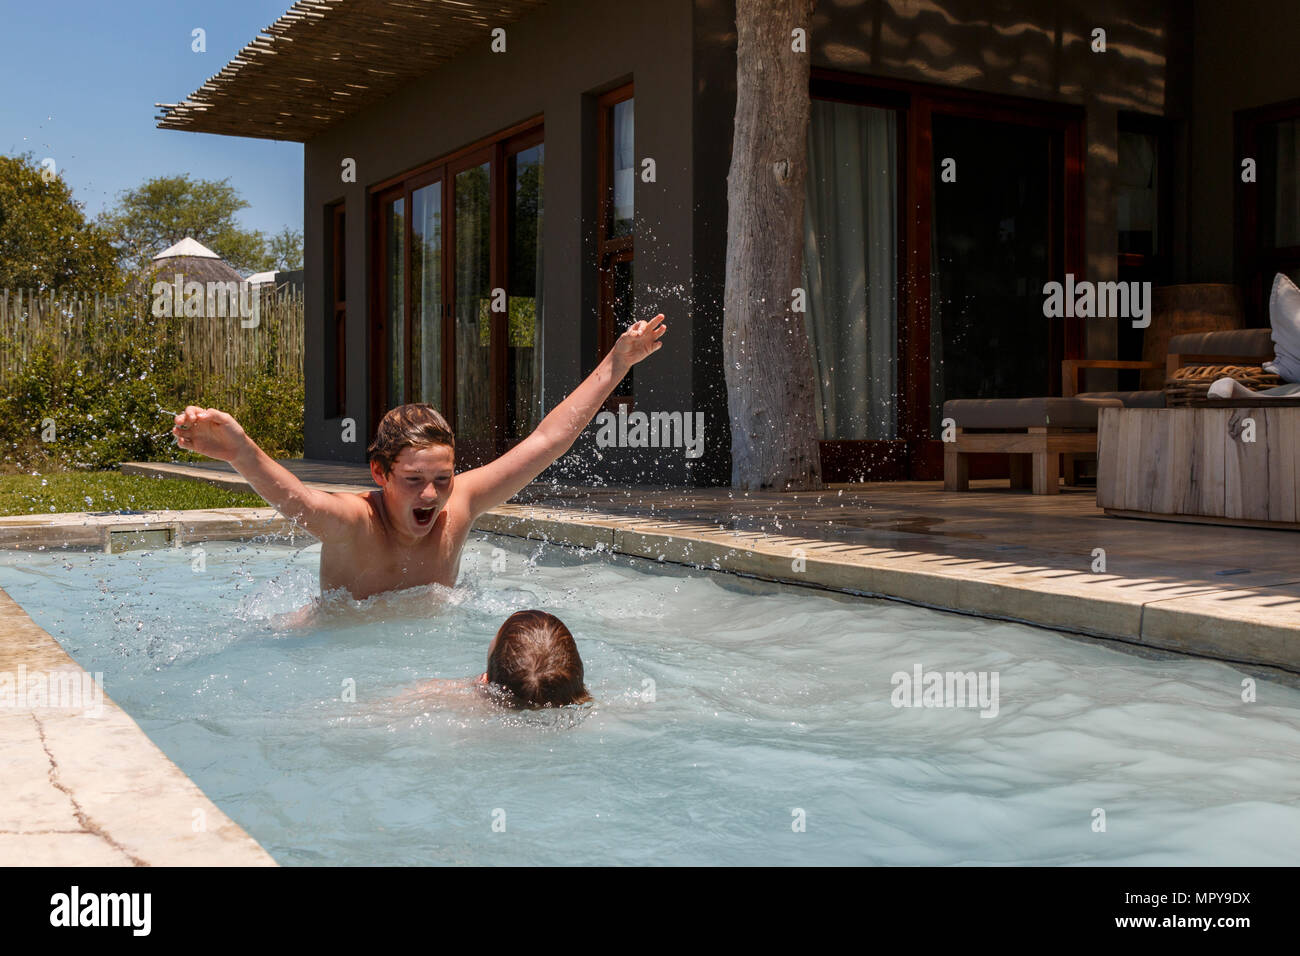 Playful brothers swimming in plunge pool against house during summer - Stock Image